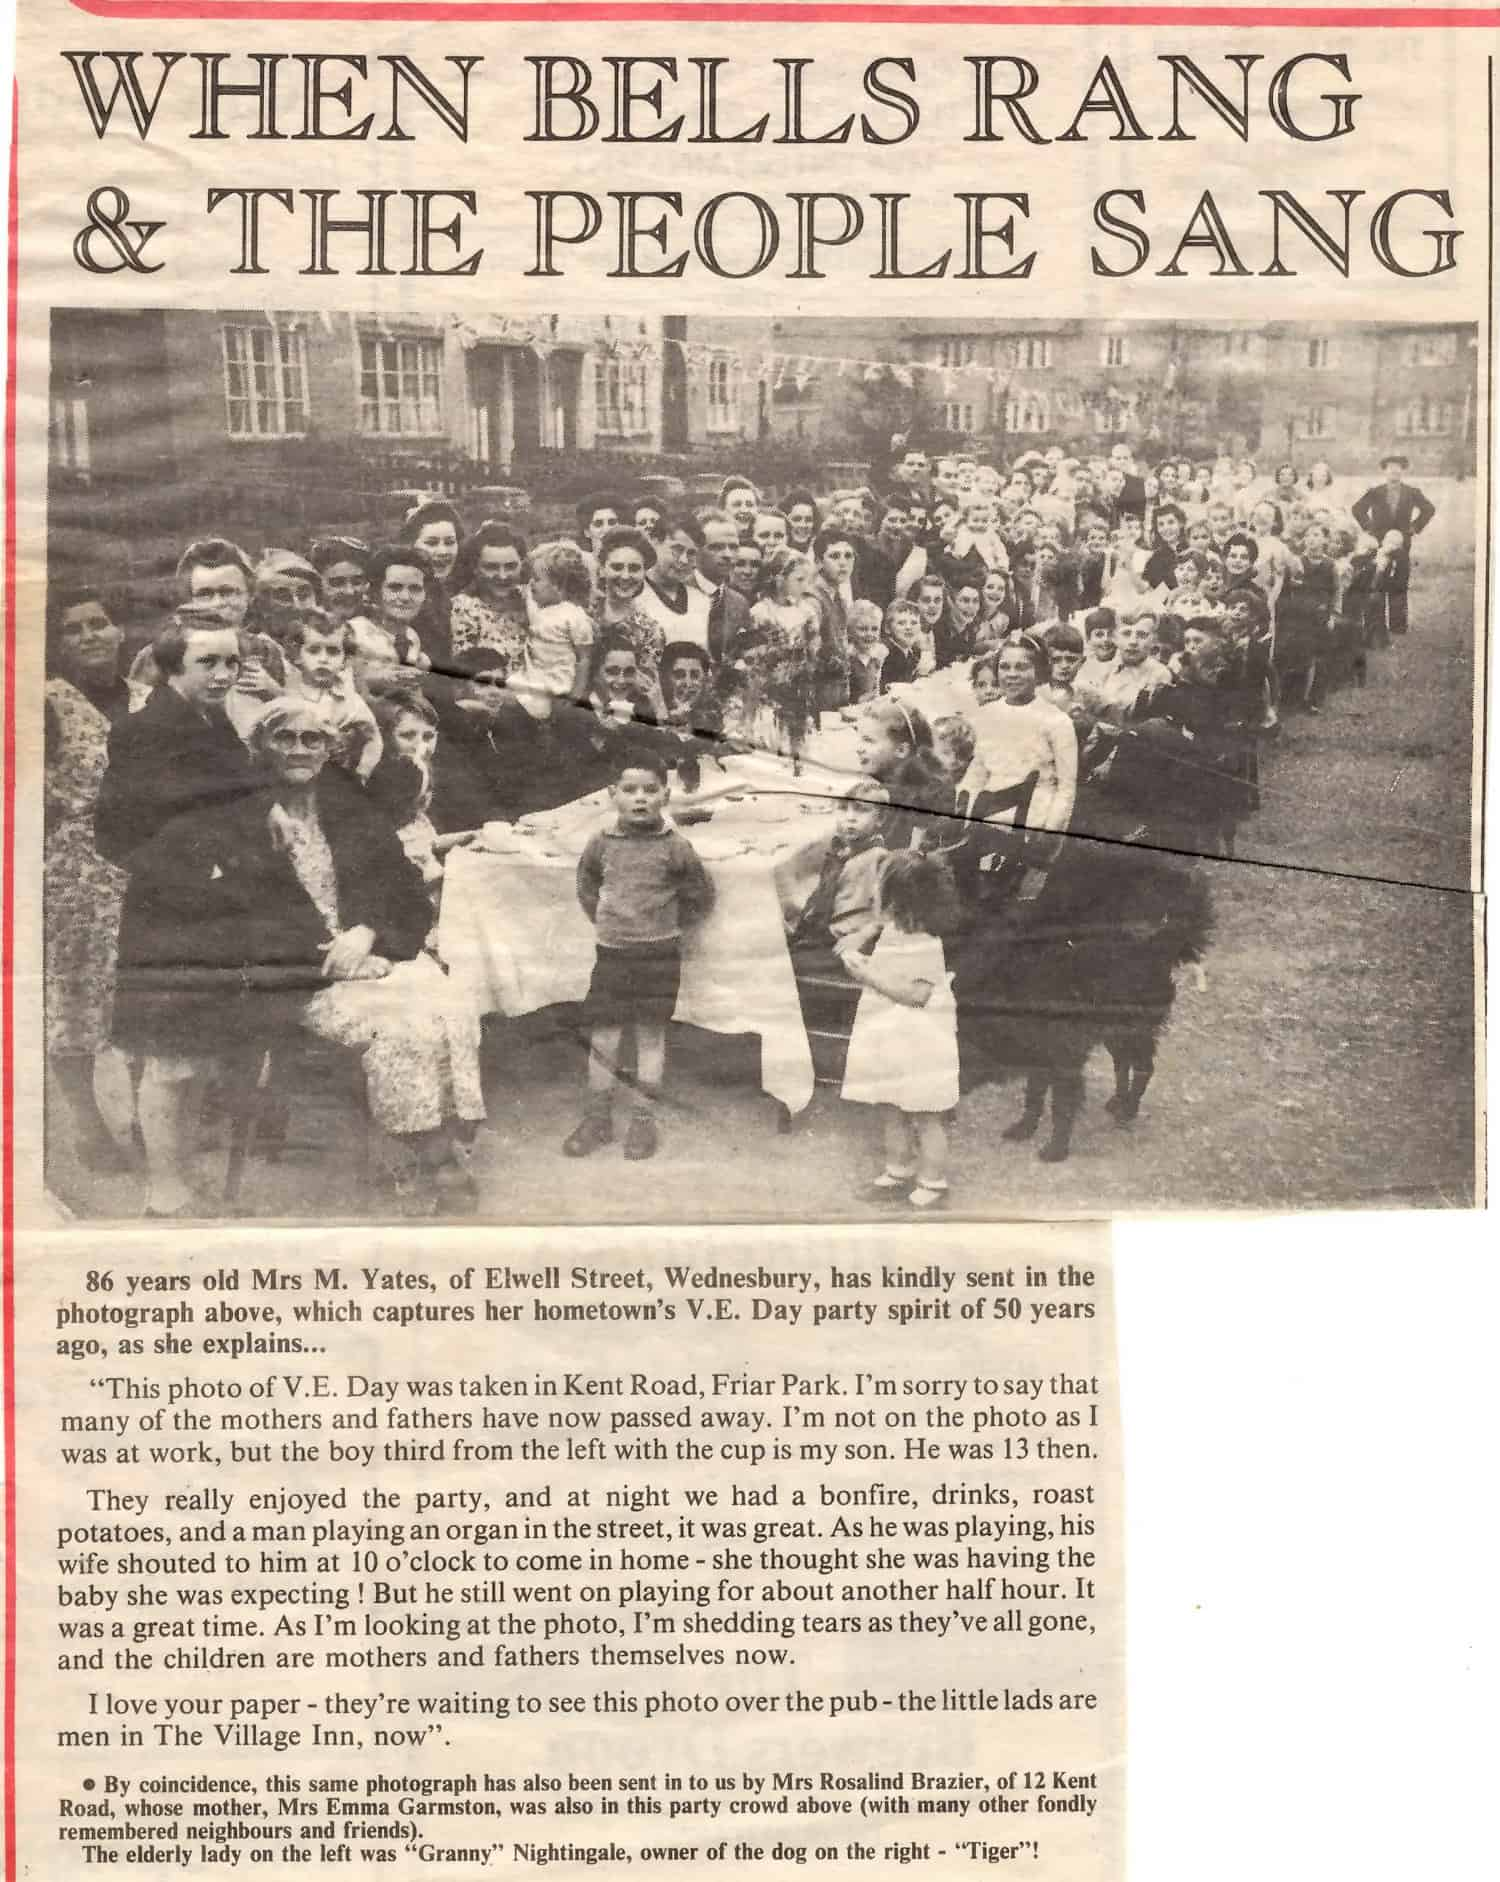 Clipping used courtesy of The Black Country Bugle